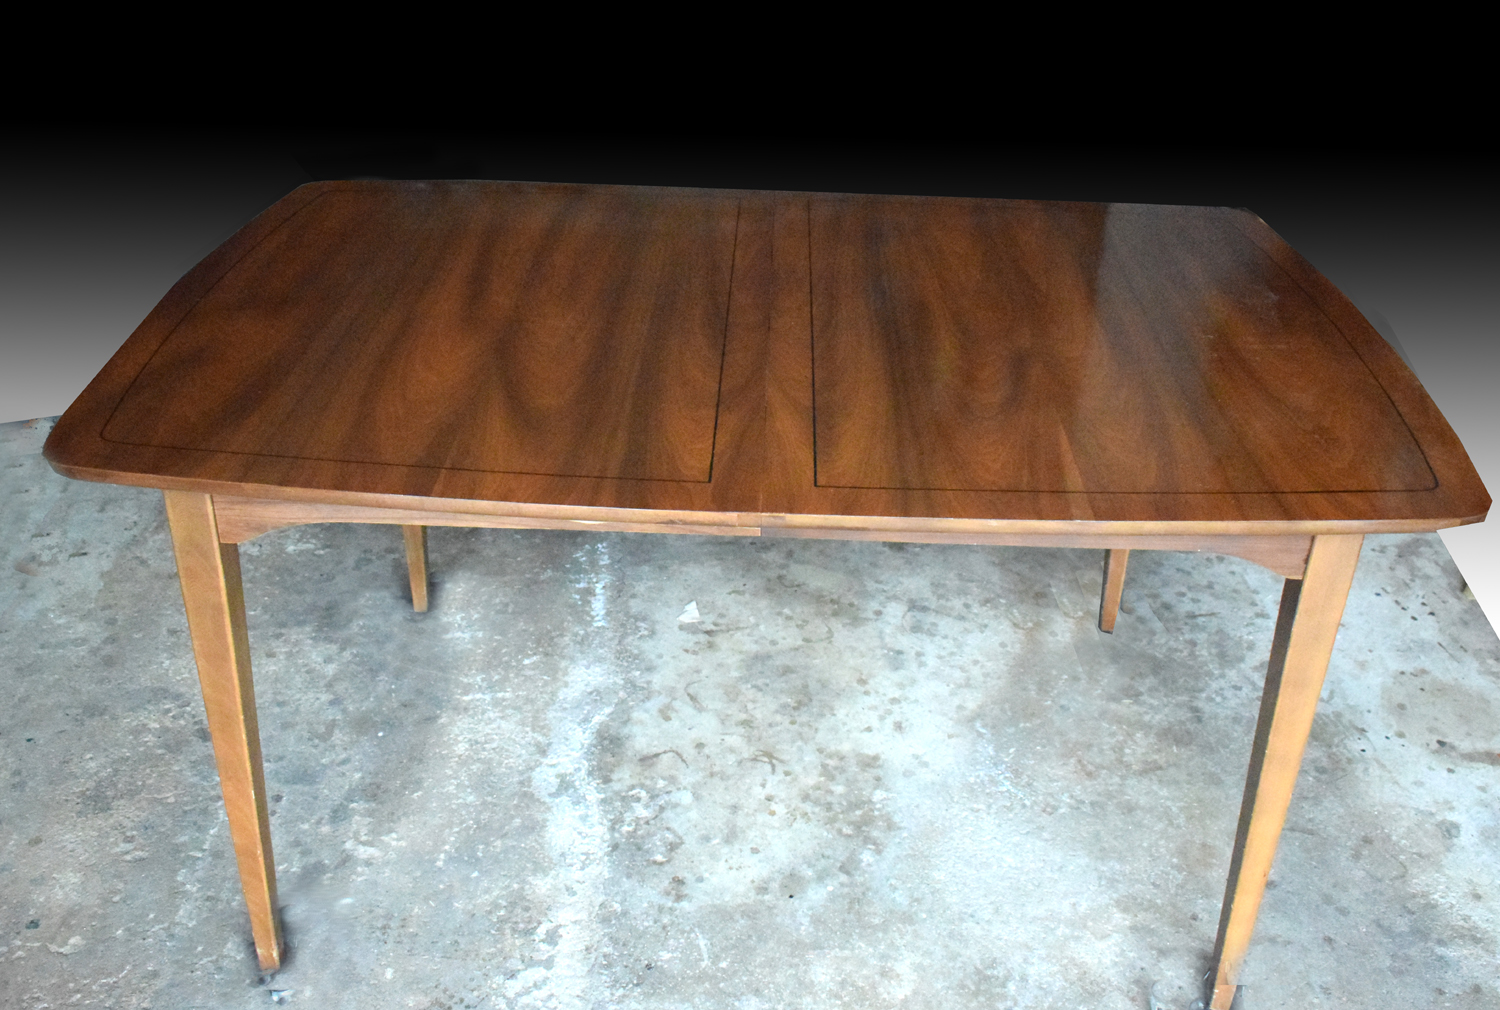 Has been cleaned and re oiled and has a beautiful finish the table is solid and sturdy with sleek tapered legs and surfboard shape no leaf included